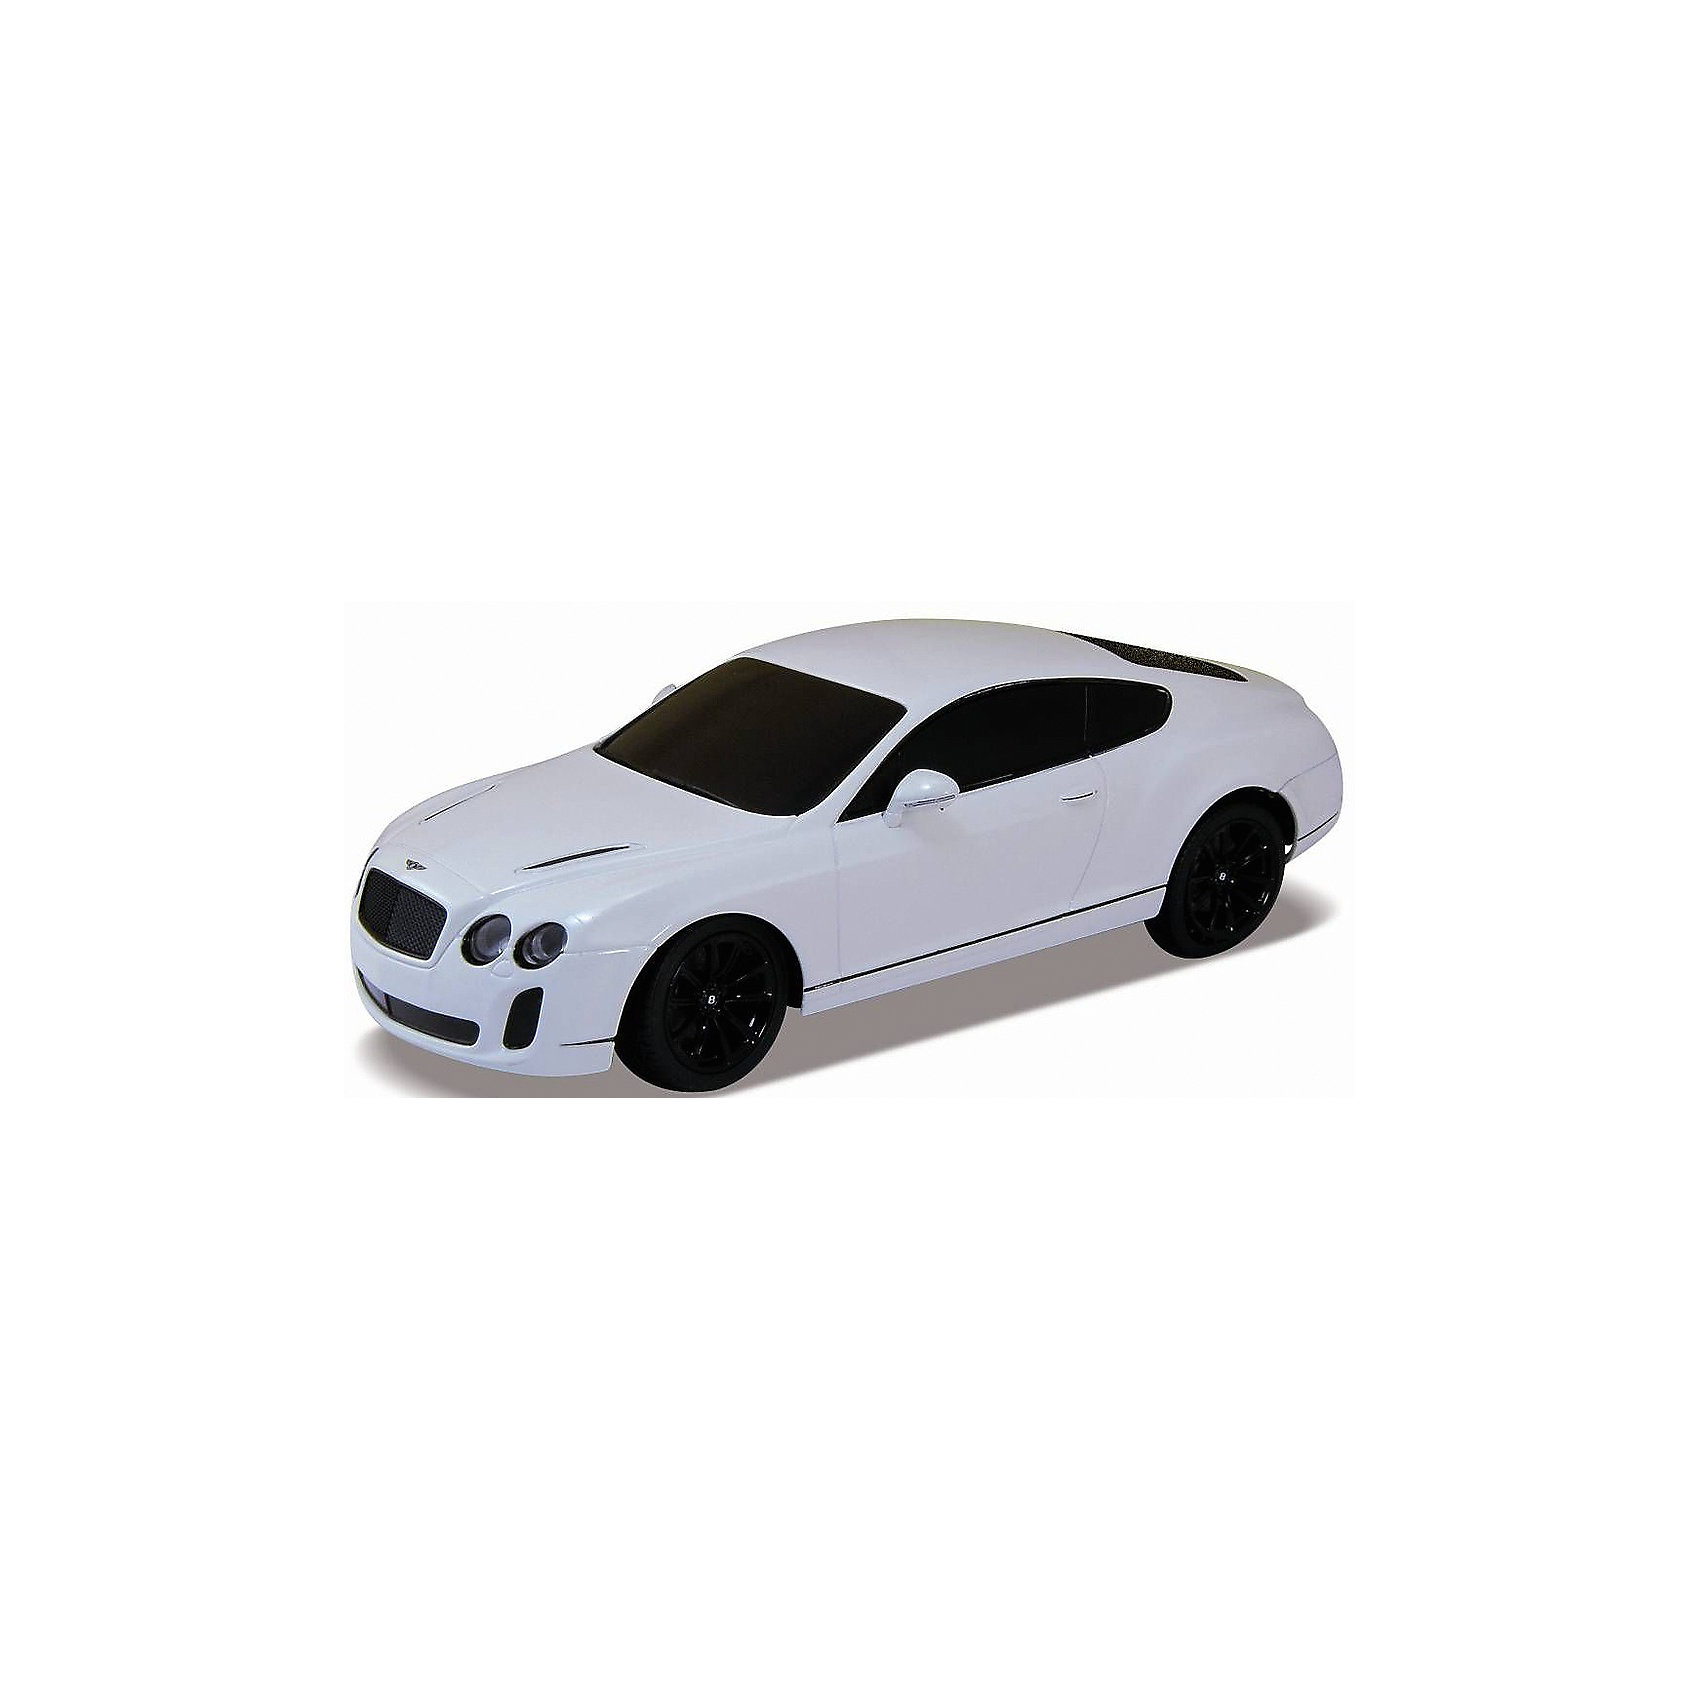 Welly Модель машины 1:24 Bentley Continental Supersports, р/у, Welly welly welly гараж 3 машины и вертолет